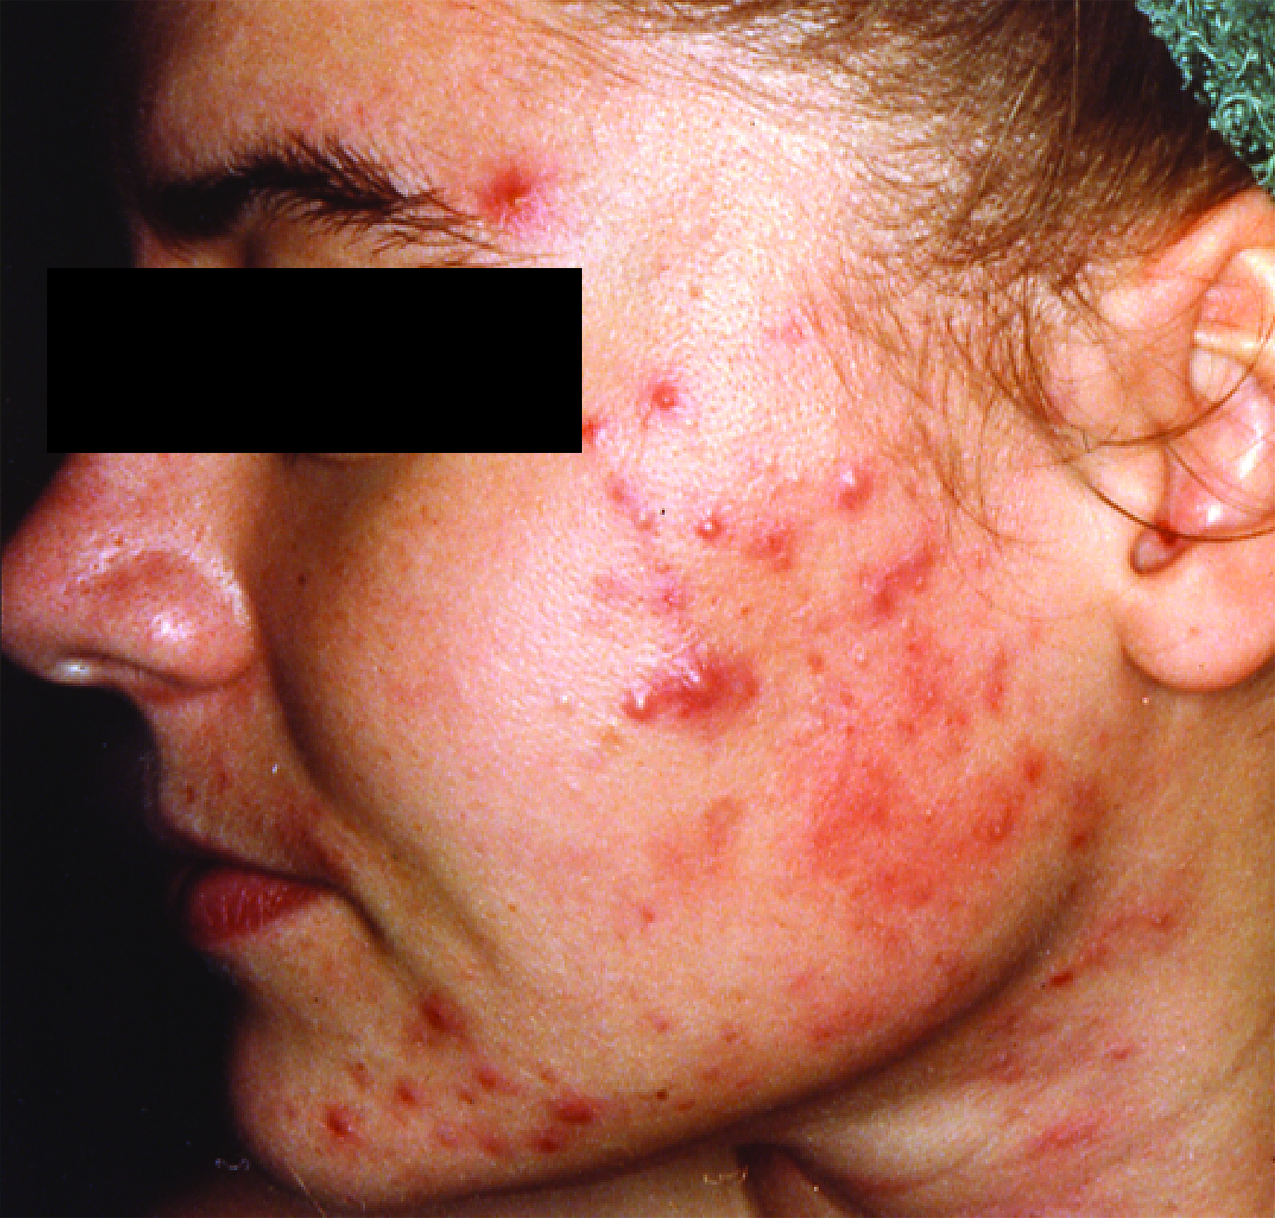 Beaura spa announces amazing results from isolaz acne for Acne salon treatments